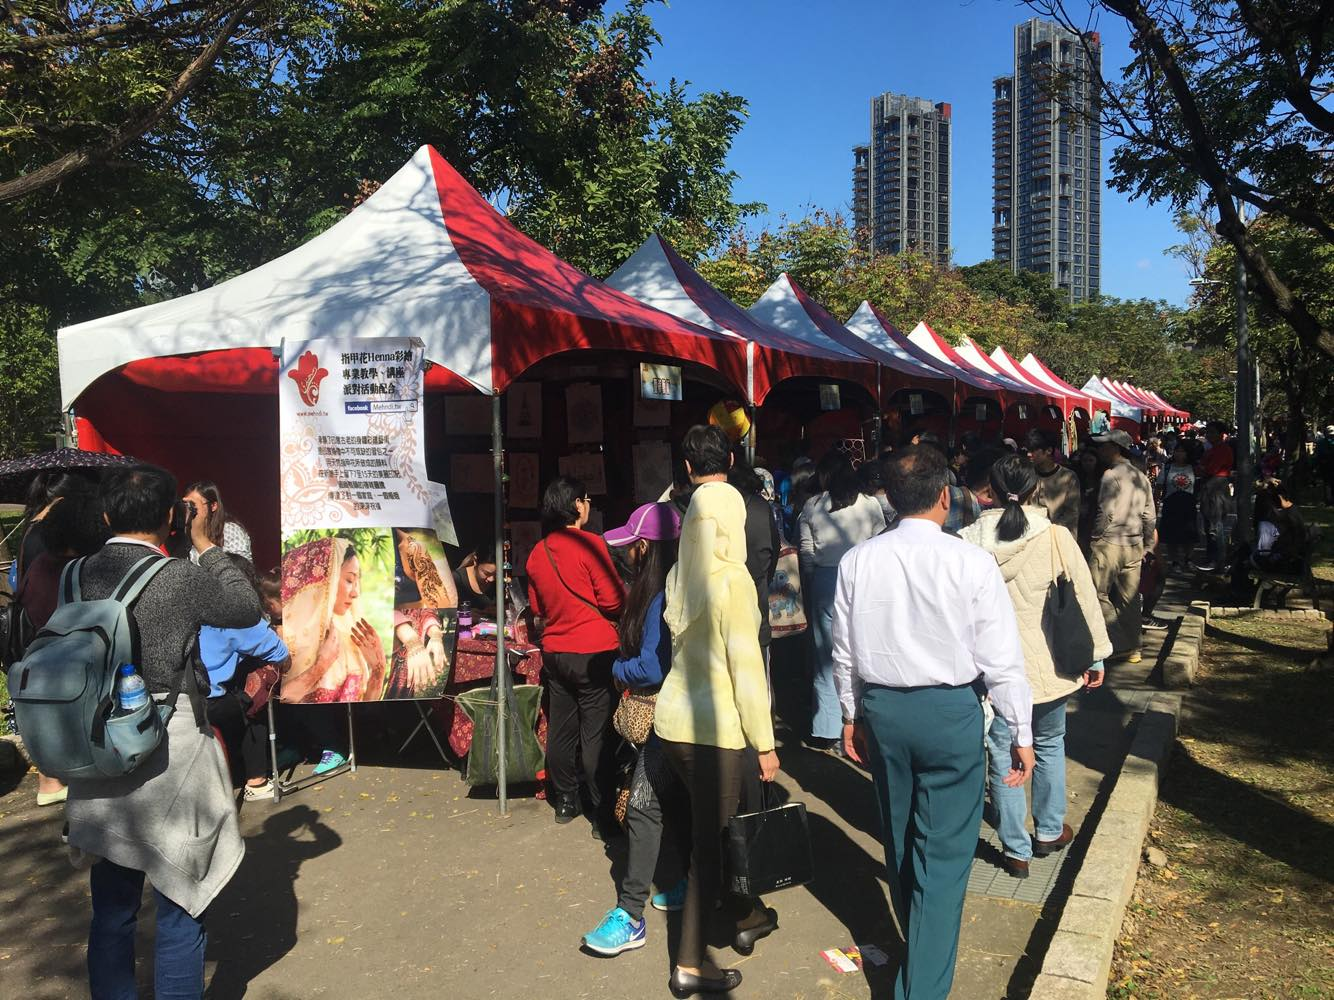 Islamic Market draws large crowds to Taipei's Daan Forest Park